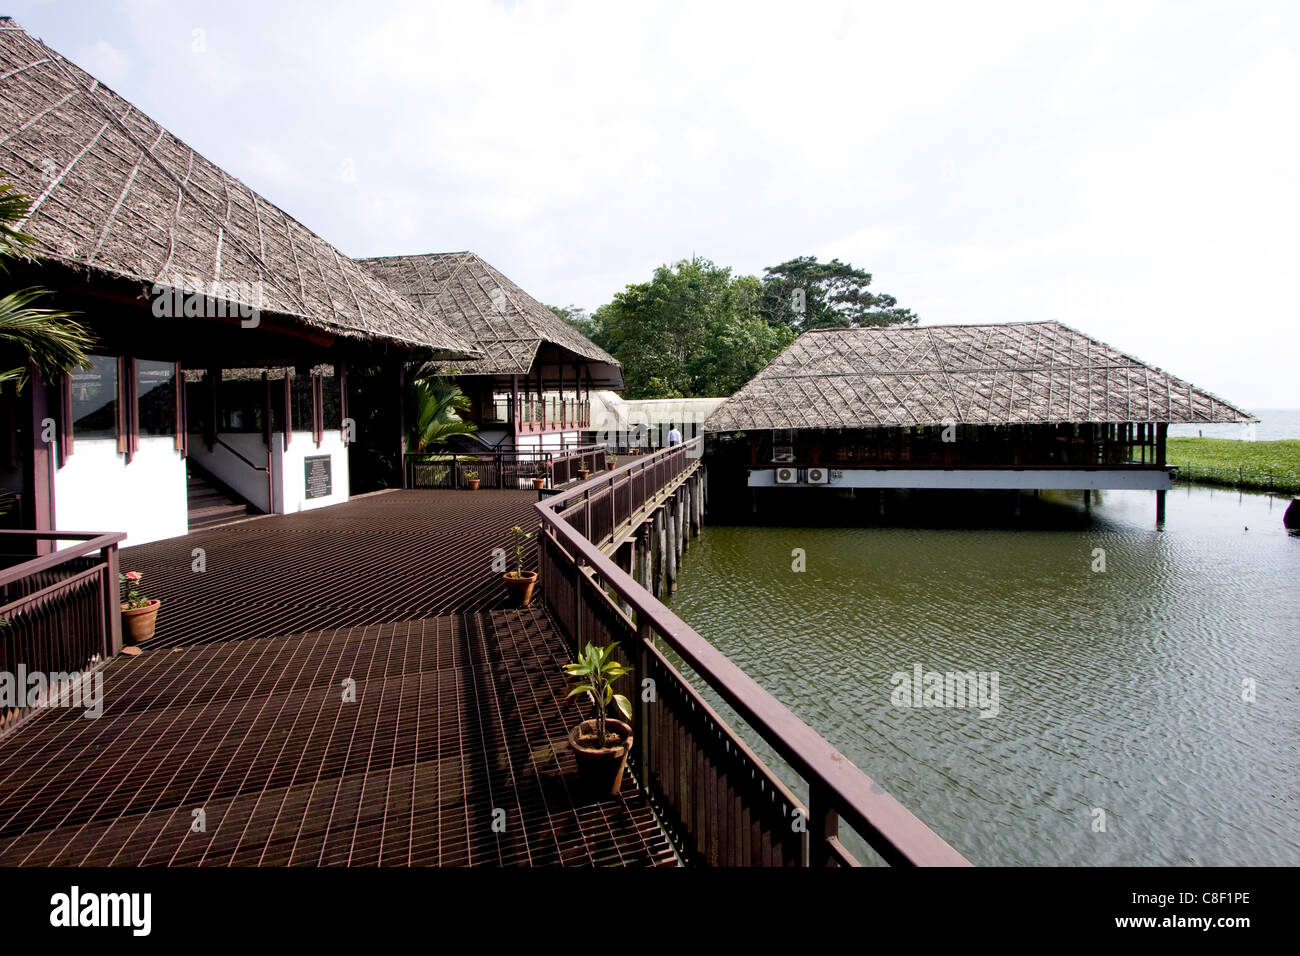 Waterscapes, KTDC, Kerala, India - Stock Image